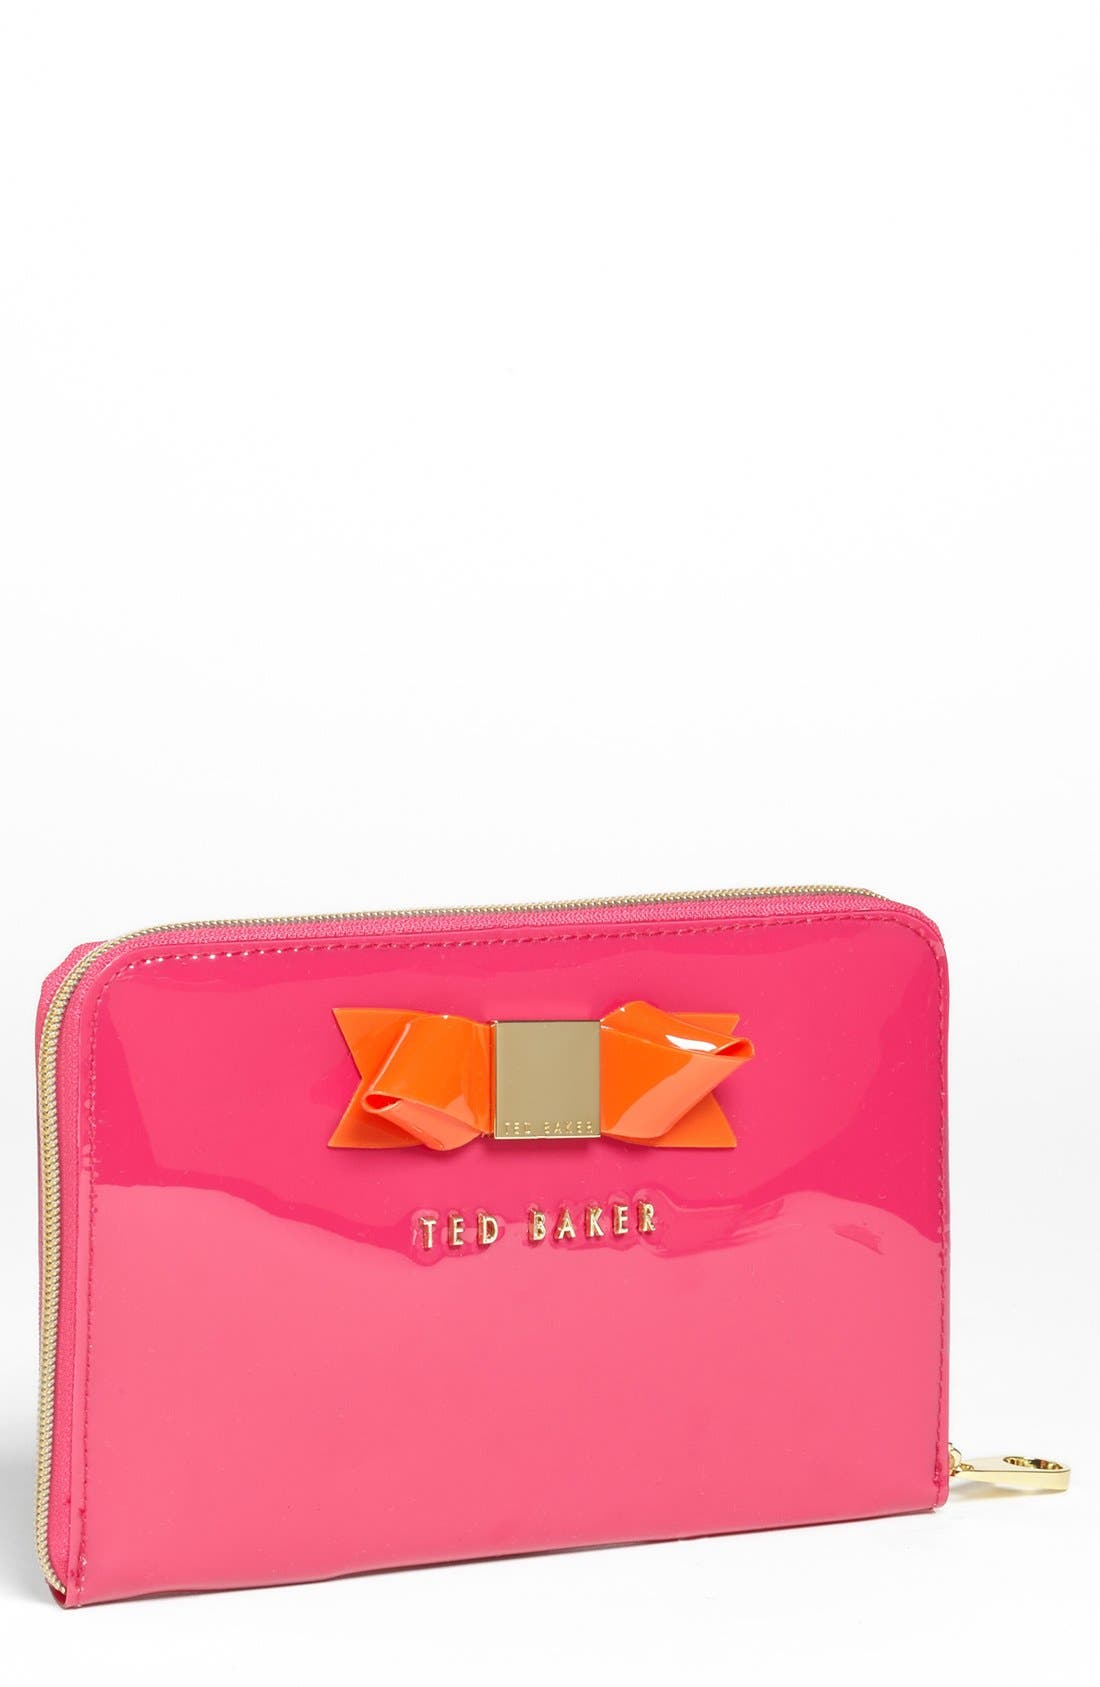 Alternate Image 1 Selected - Ted Baker London iPad mini™ Tablet Case